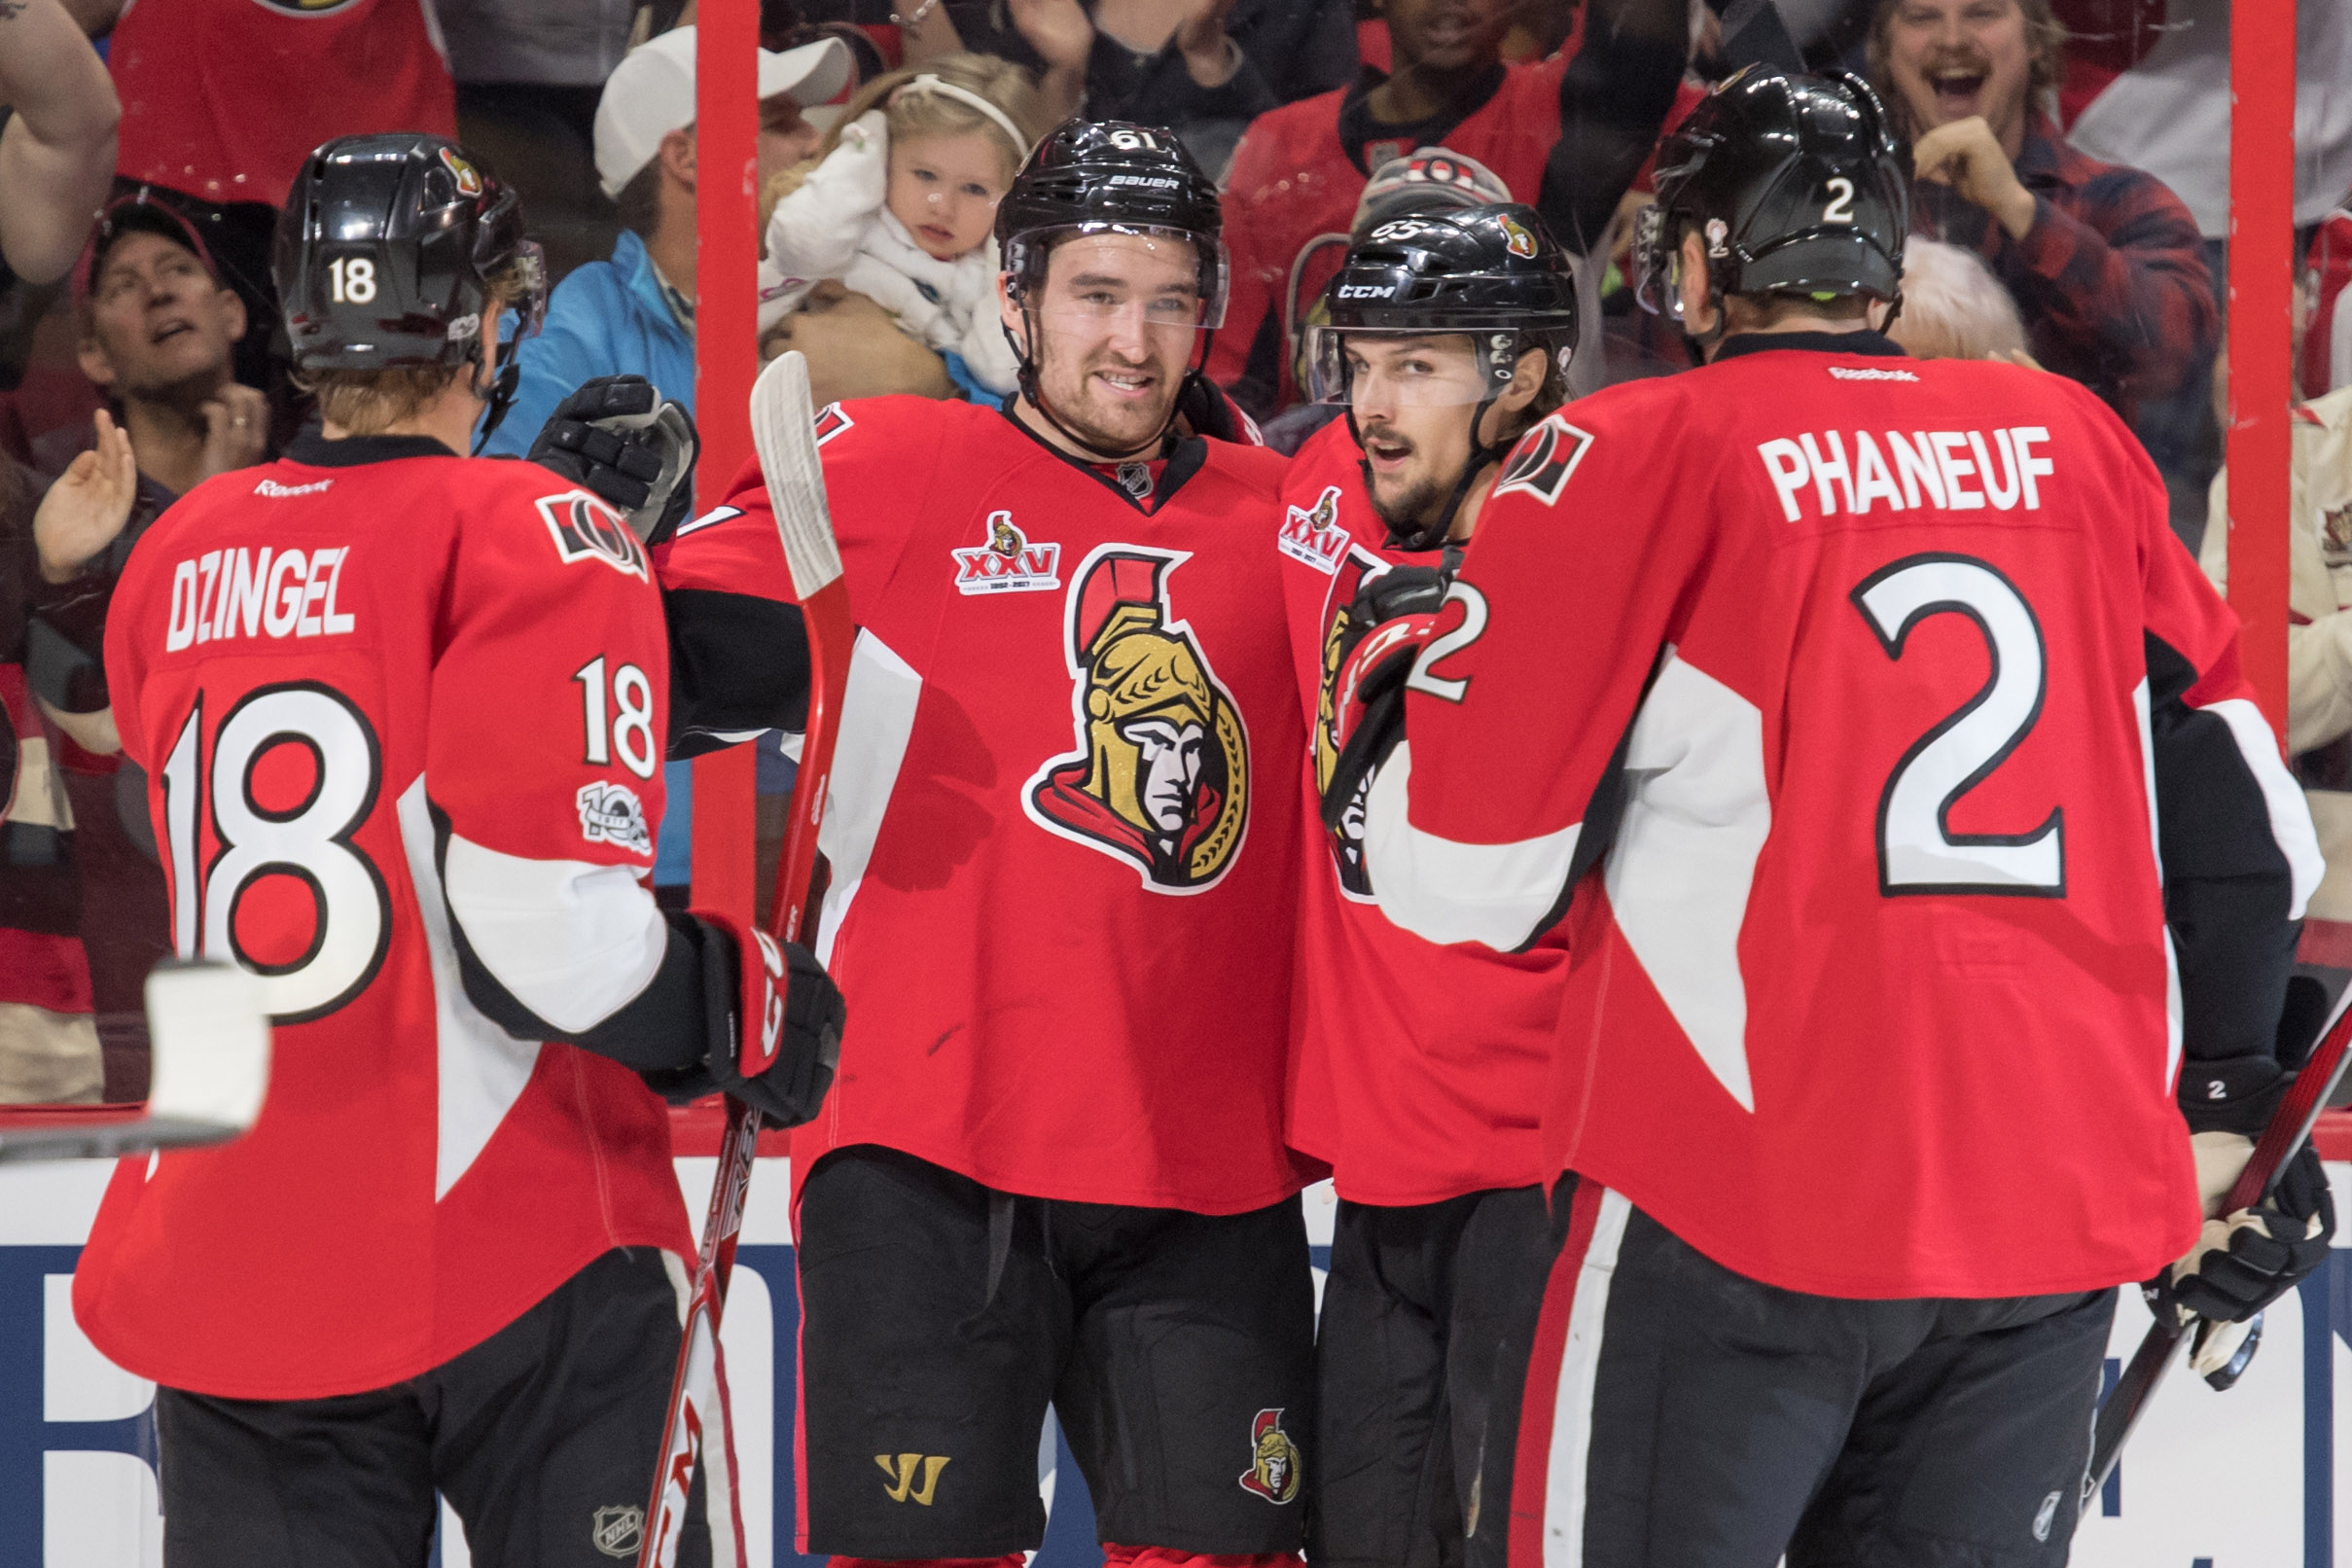 Ottawa Senators: Tough Four Game Road Trip Ahead